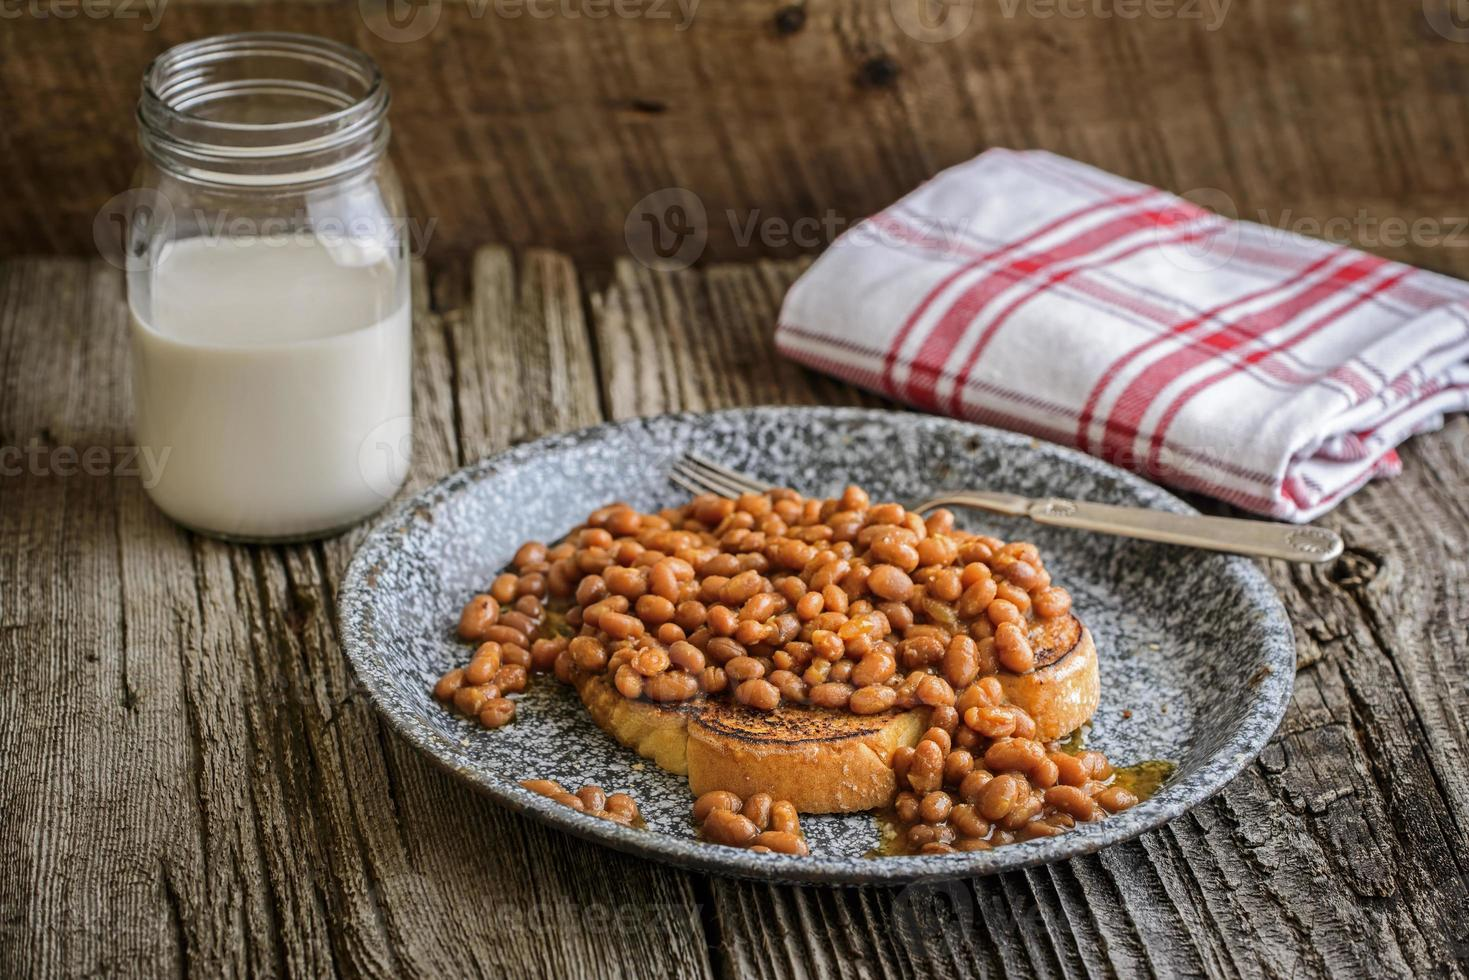 Toast and Beans photo